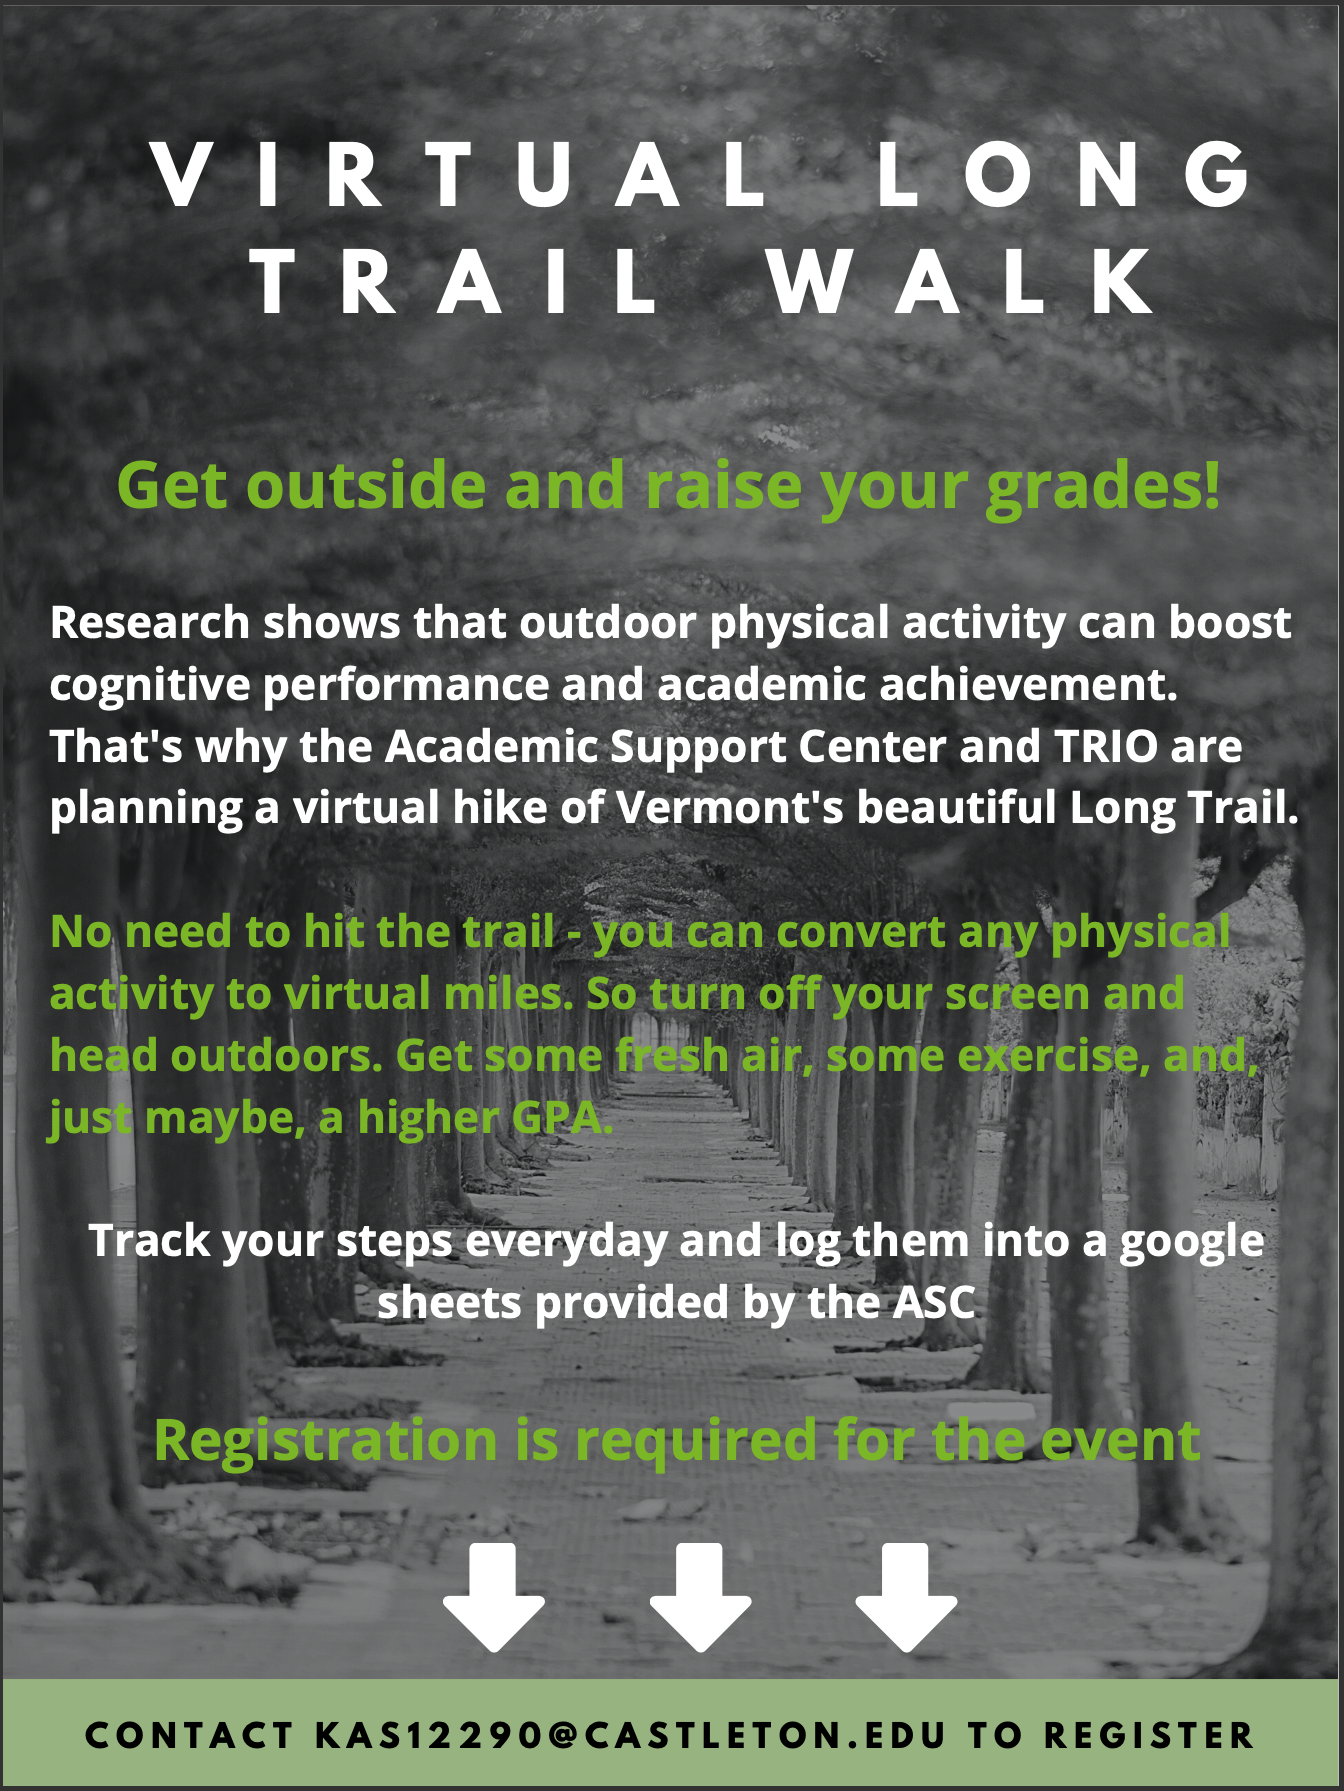 Join the Virtual Long Trail Walk